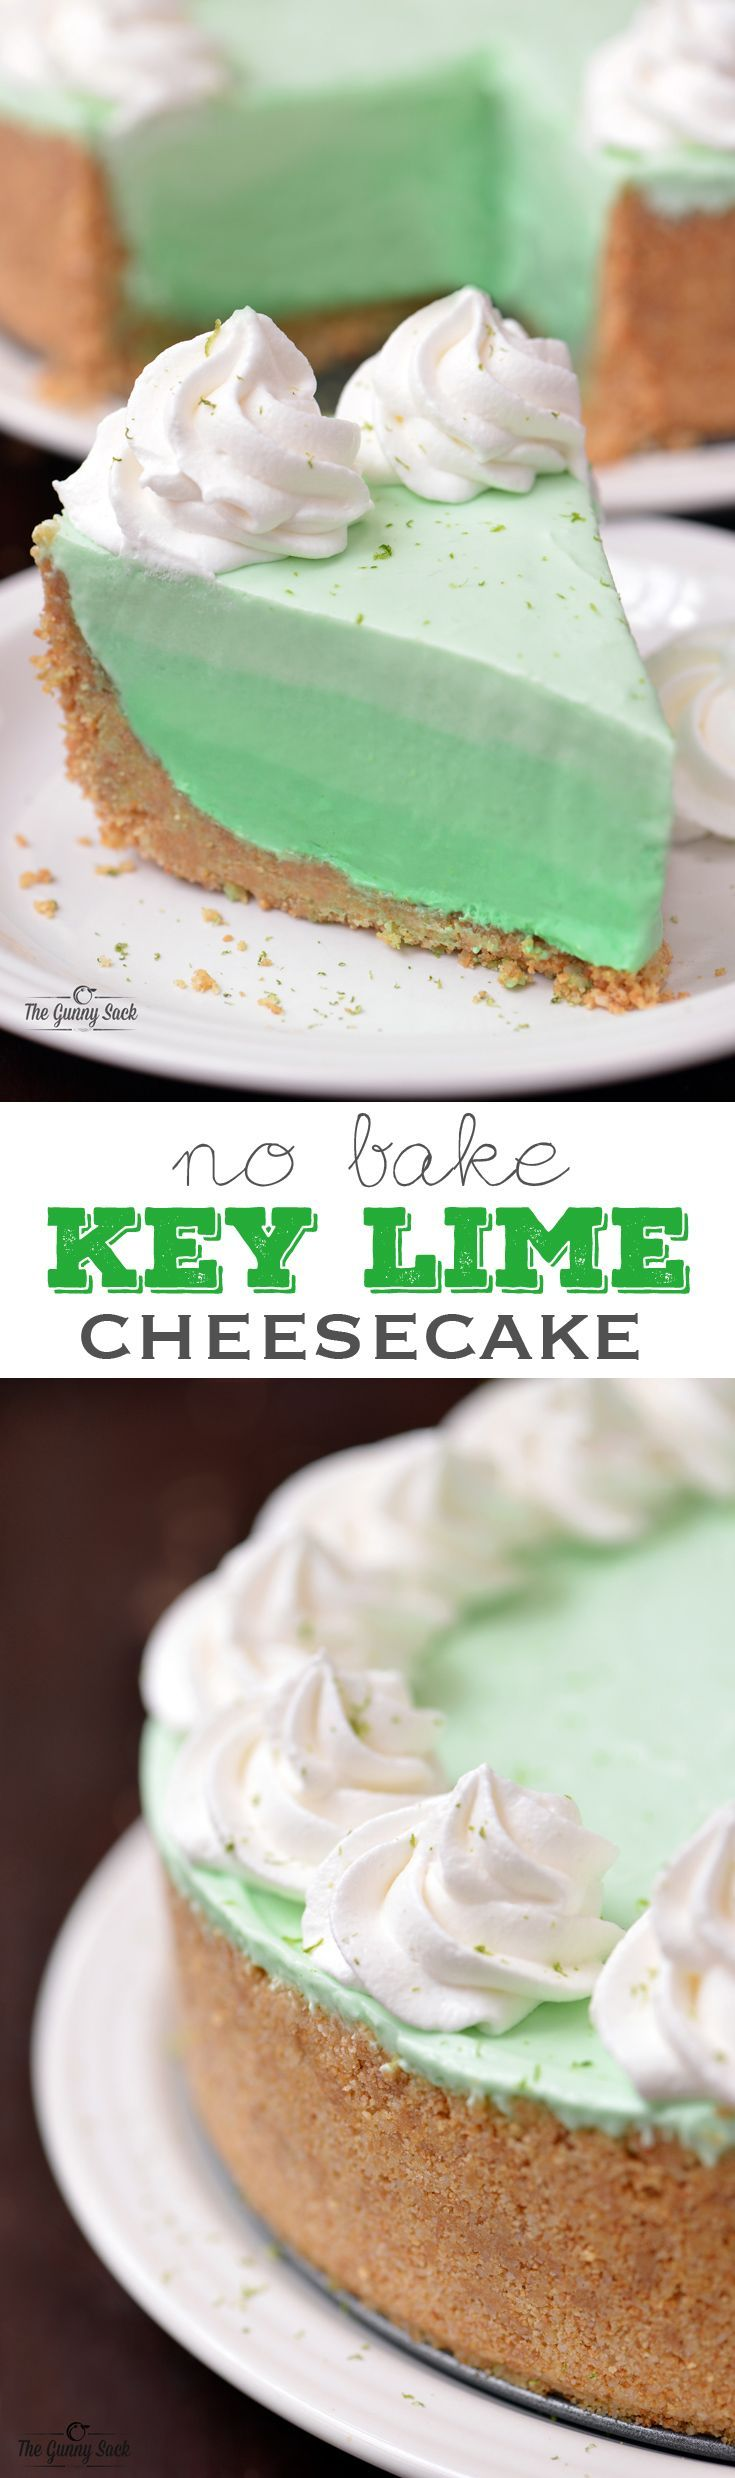 This key lime cheesecake is so easy to make, yet it looks impressive. This no bake recipe features a macadamia nut crust with an ombre cheesecake filling.